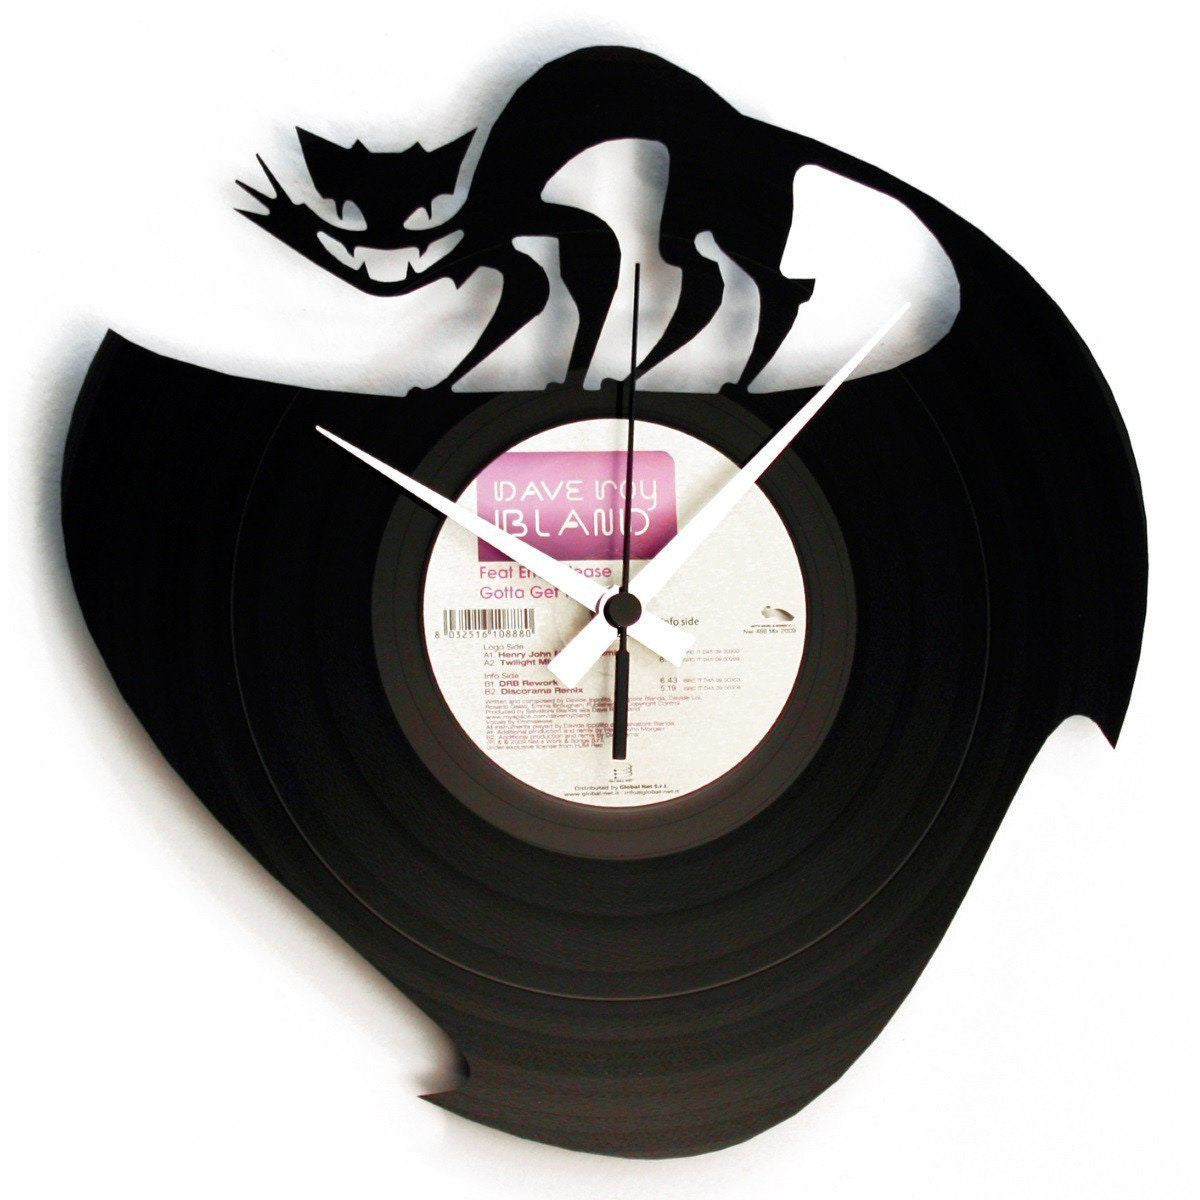 DISC'O'CLOCK Vinyl Record Curiosity Killed the Cat Wall Clock 30cm DOC003